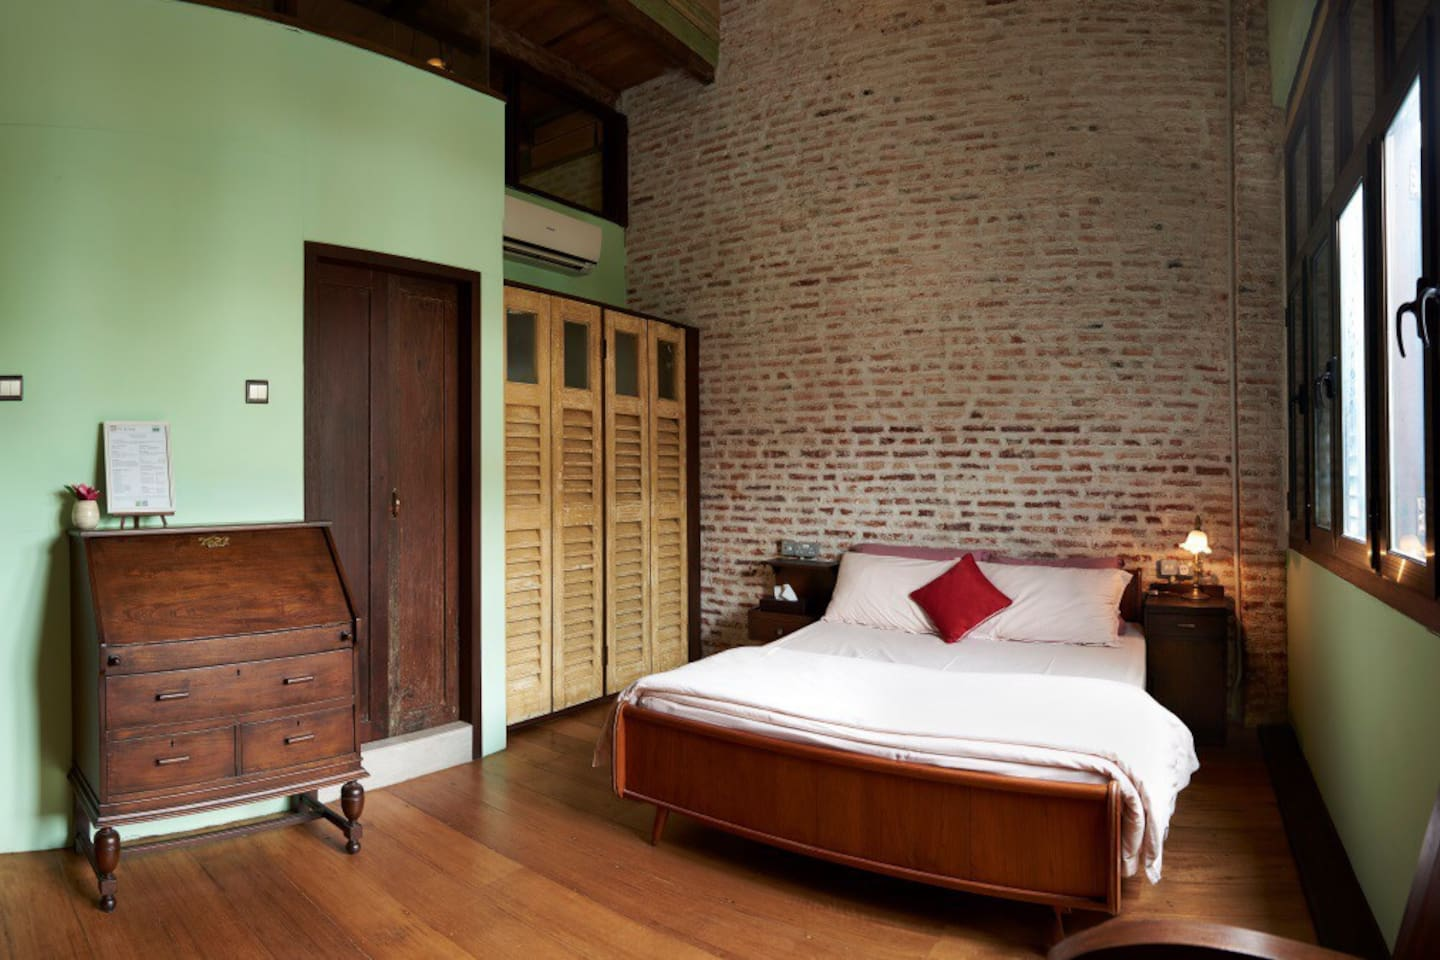 Situated at the north end of the building .  1 mid-century style queen sized teak bed . En-suite bathroom with rain shower .